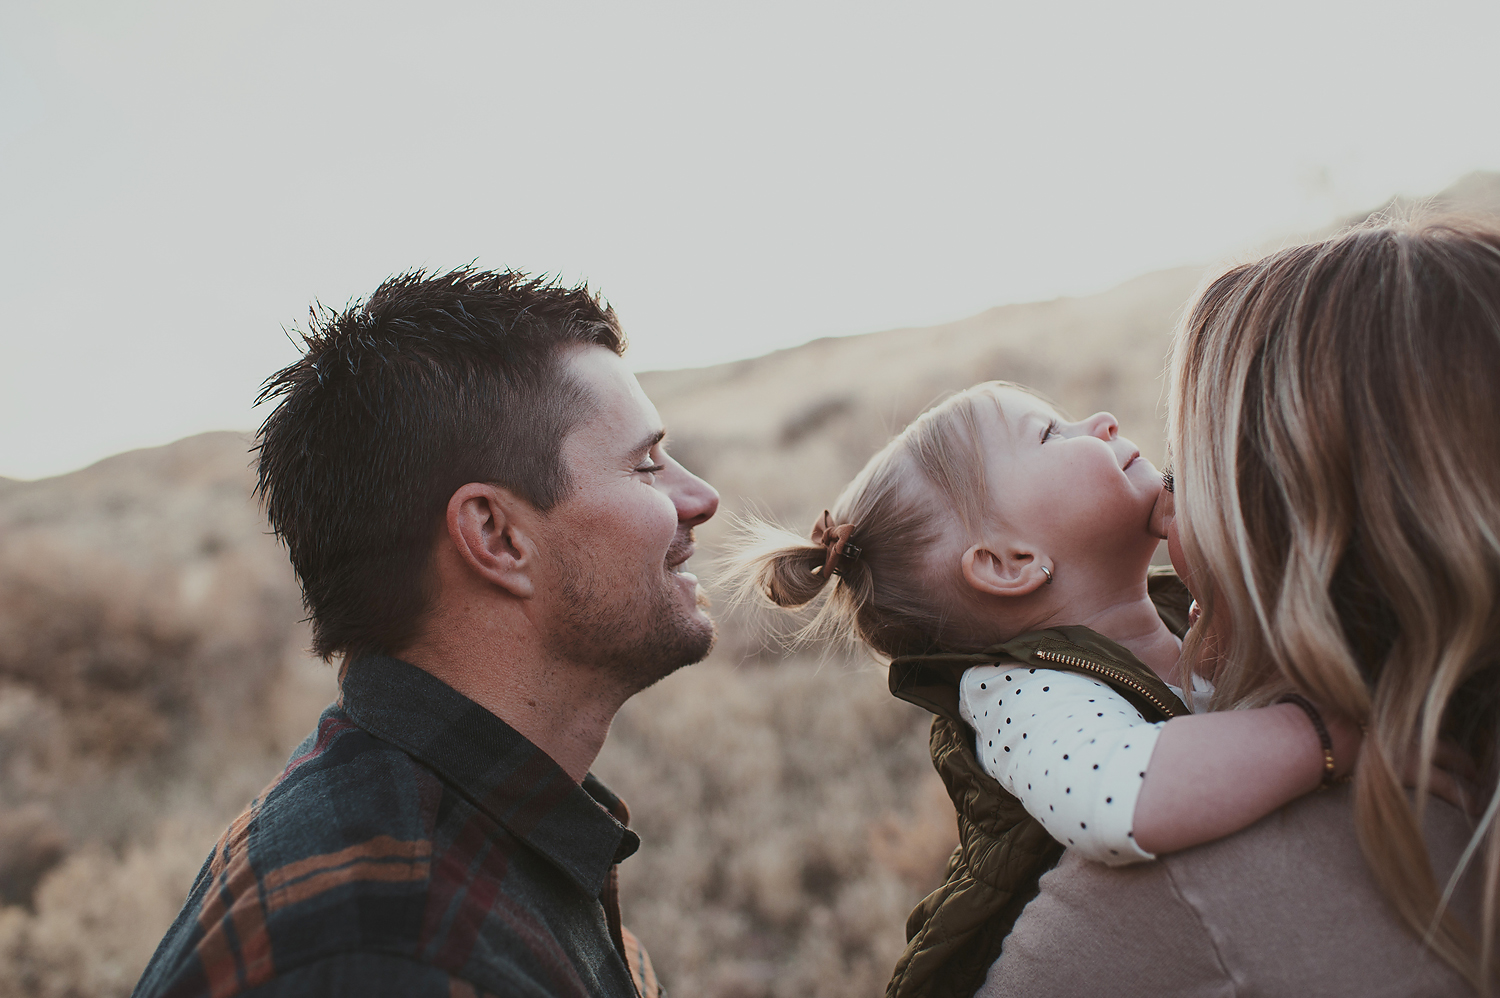 Mom and dad playing with little girl